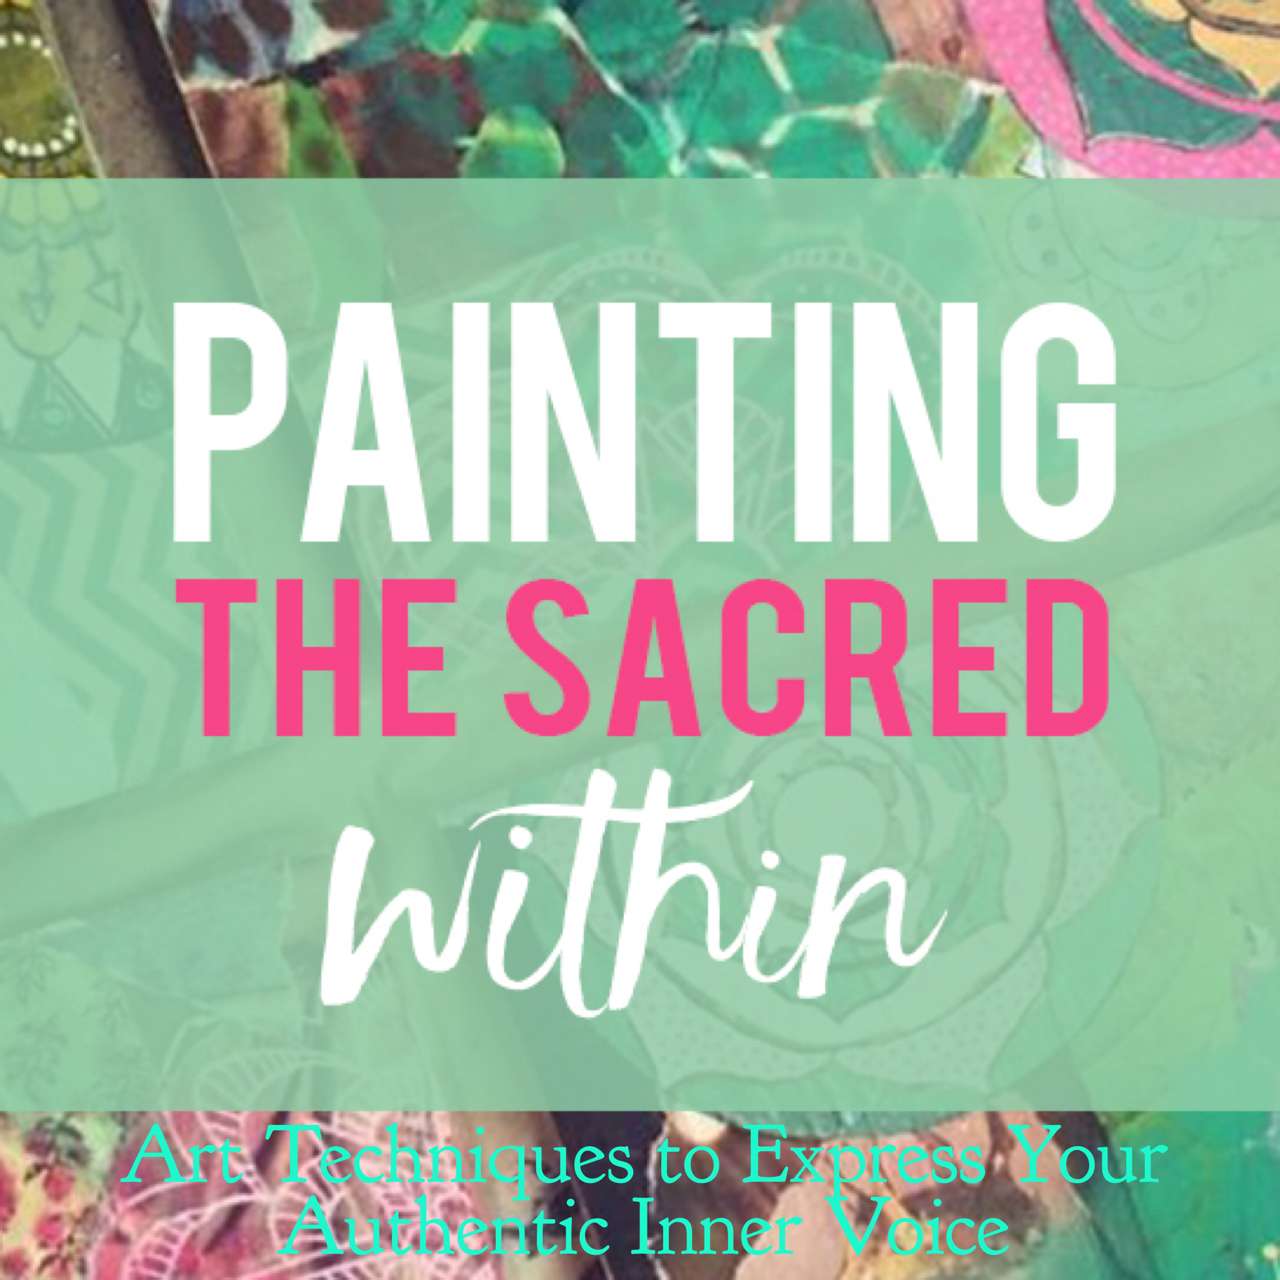 Start Painting: With My Most Popular E-Course